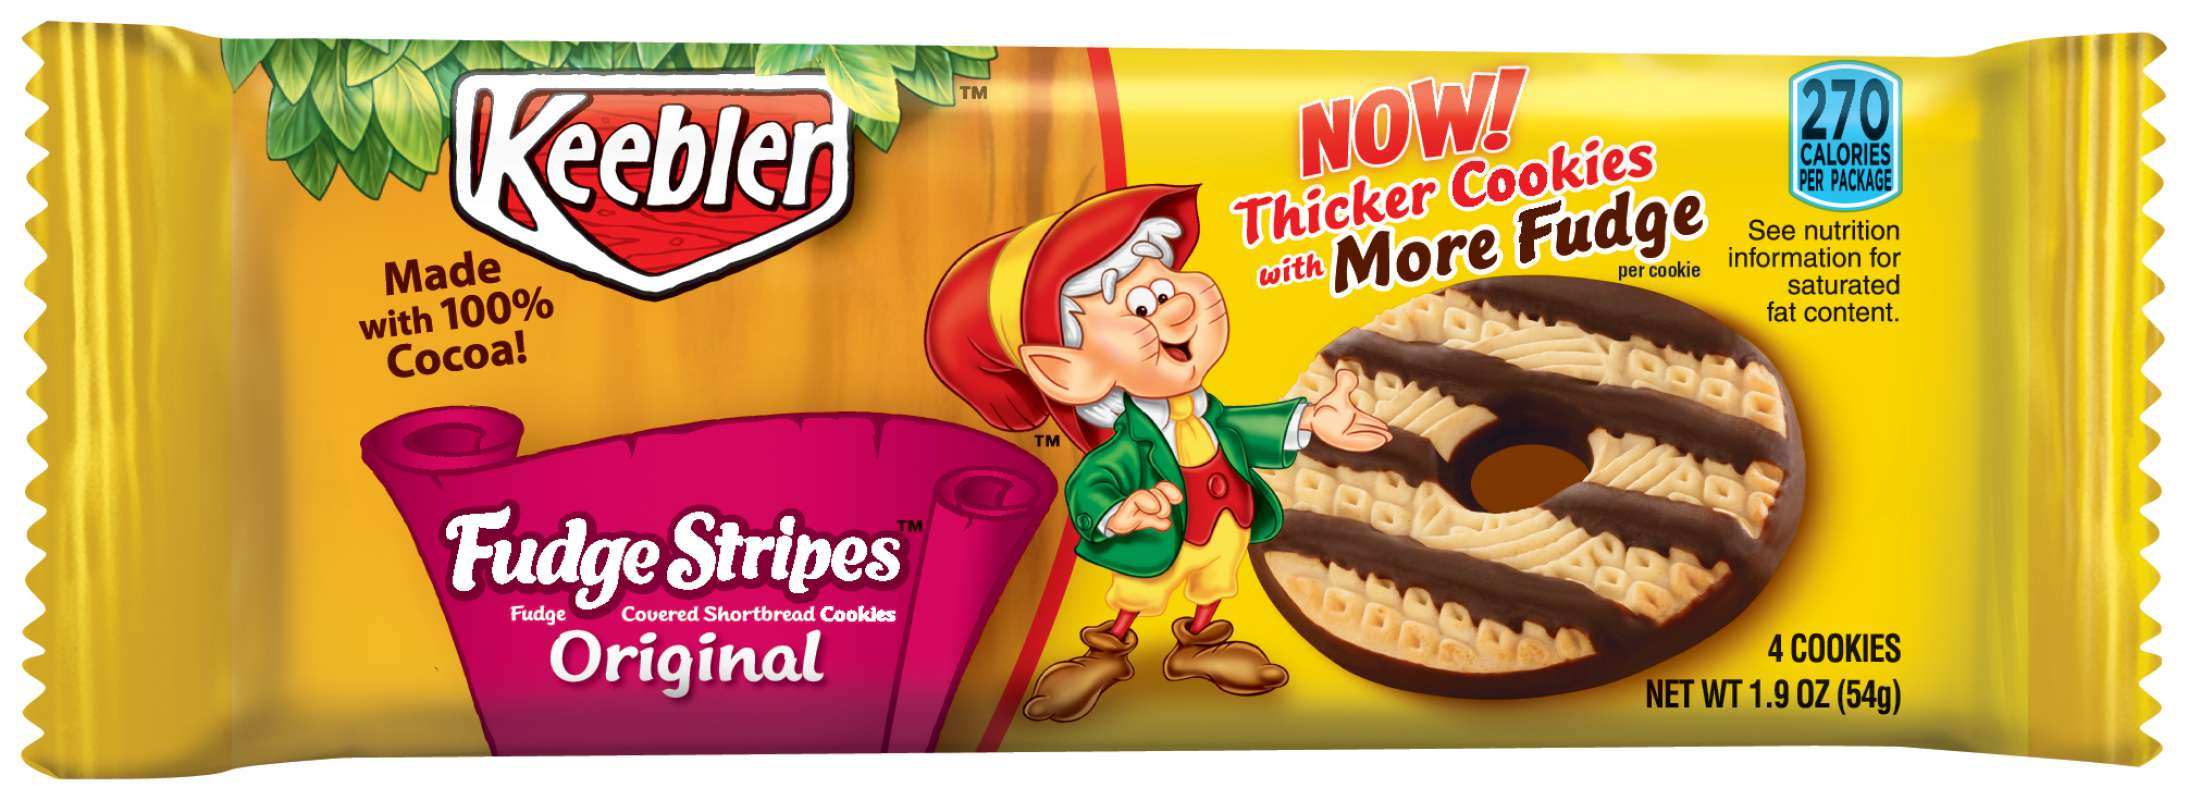 Keebler Cookies Coupon 100 Off 2 Keebler Cookies